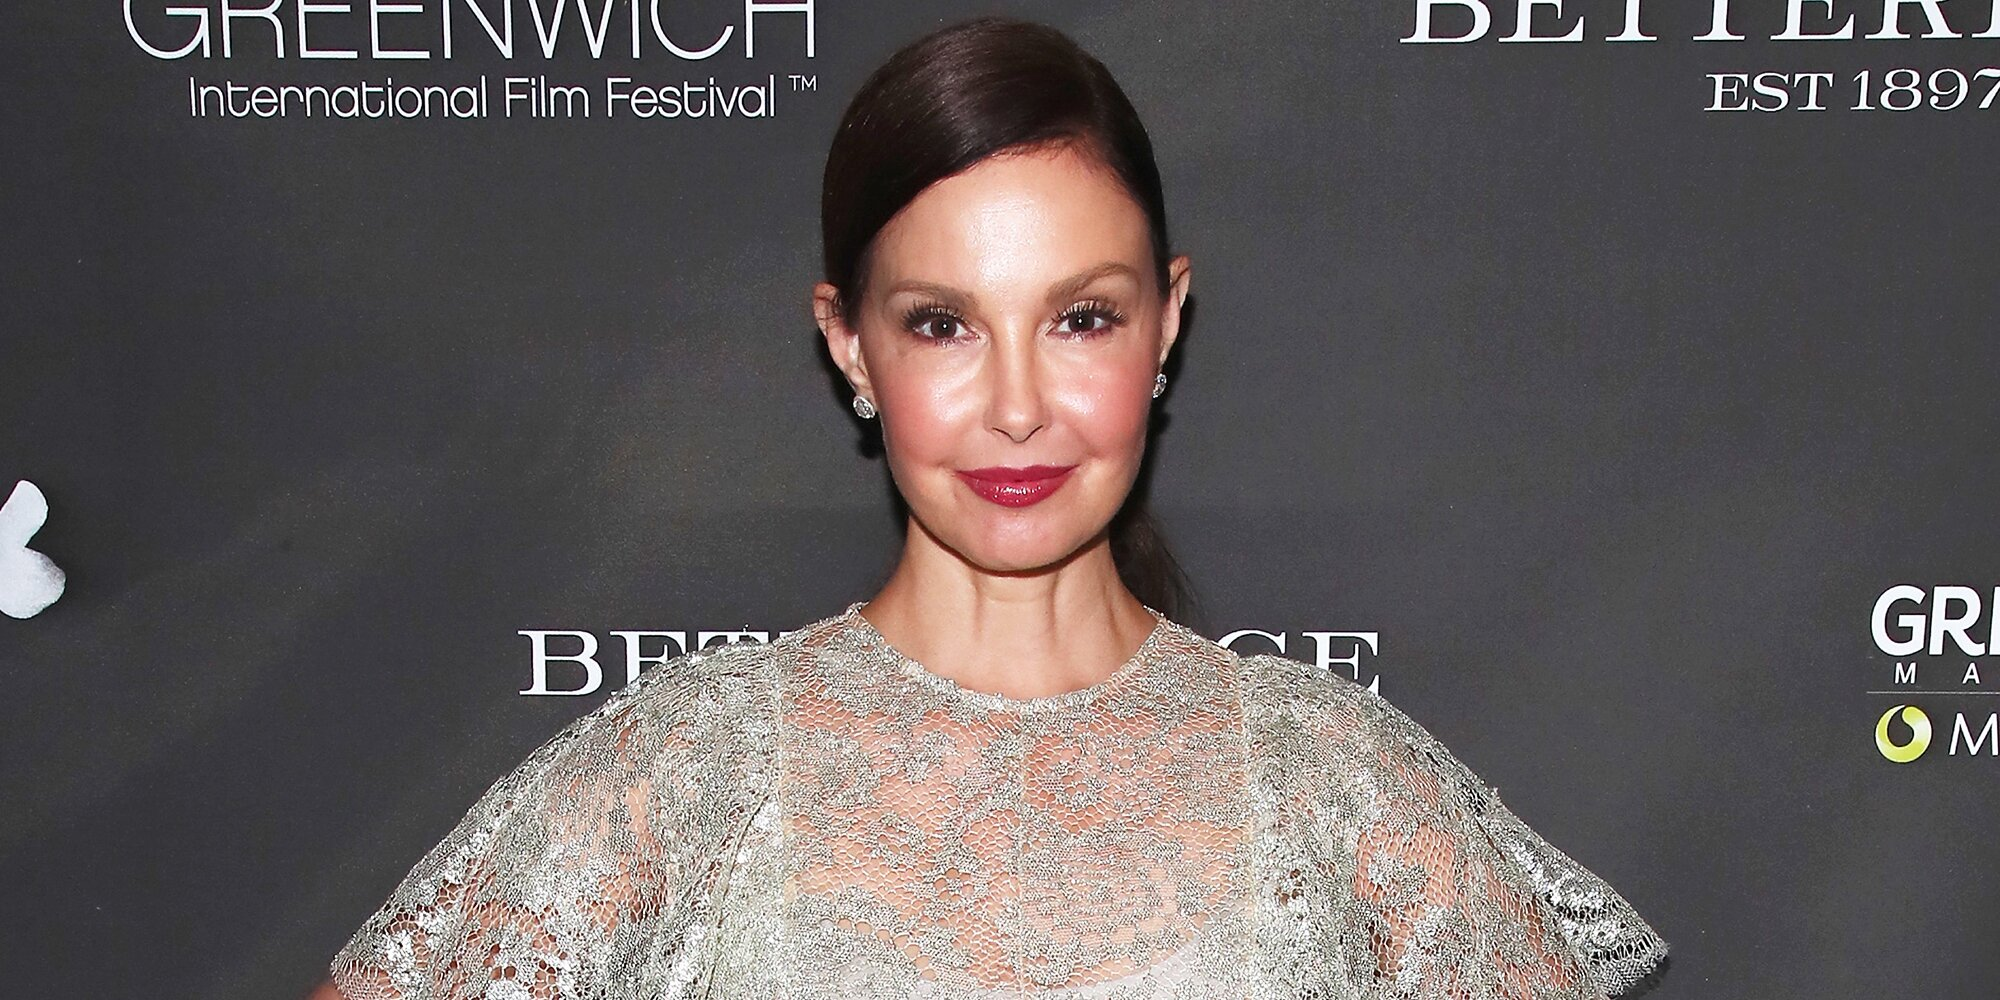 Ashley Judd is walking again almost 6 months after shattering her leg: 'We have come a long way'